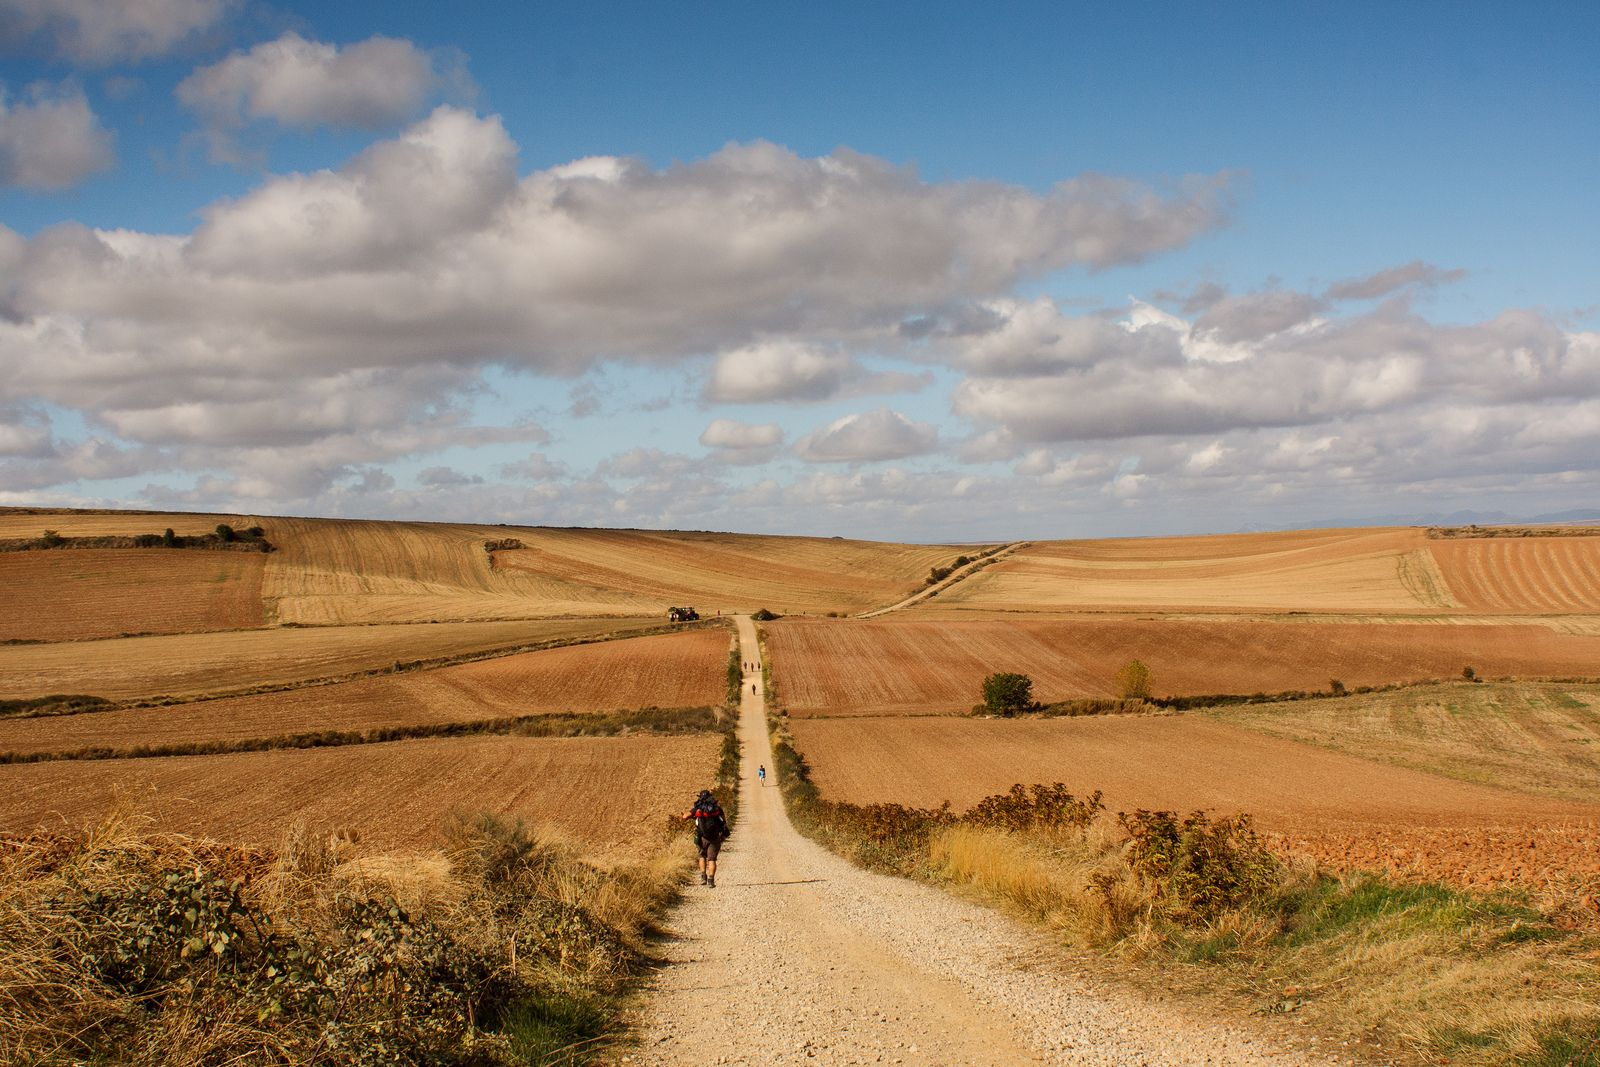 Camino De Santiago Camino De Santo Domingo De La Calzada Cool Places To Visit Travel Around The World Places To Visit